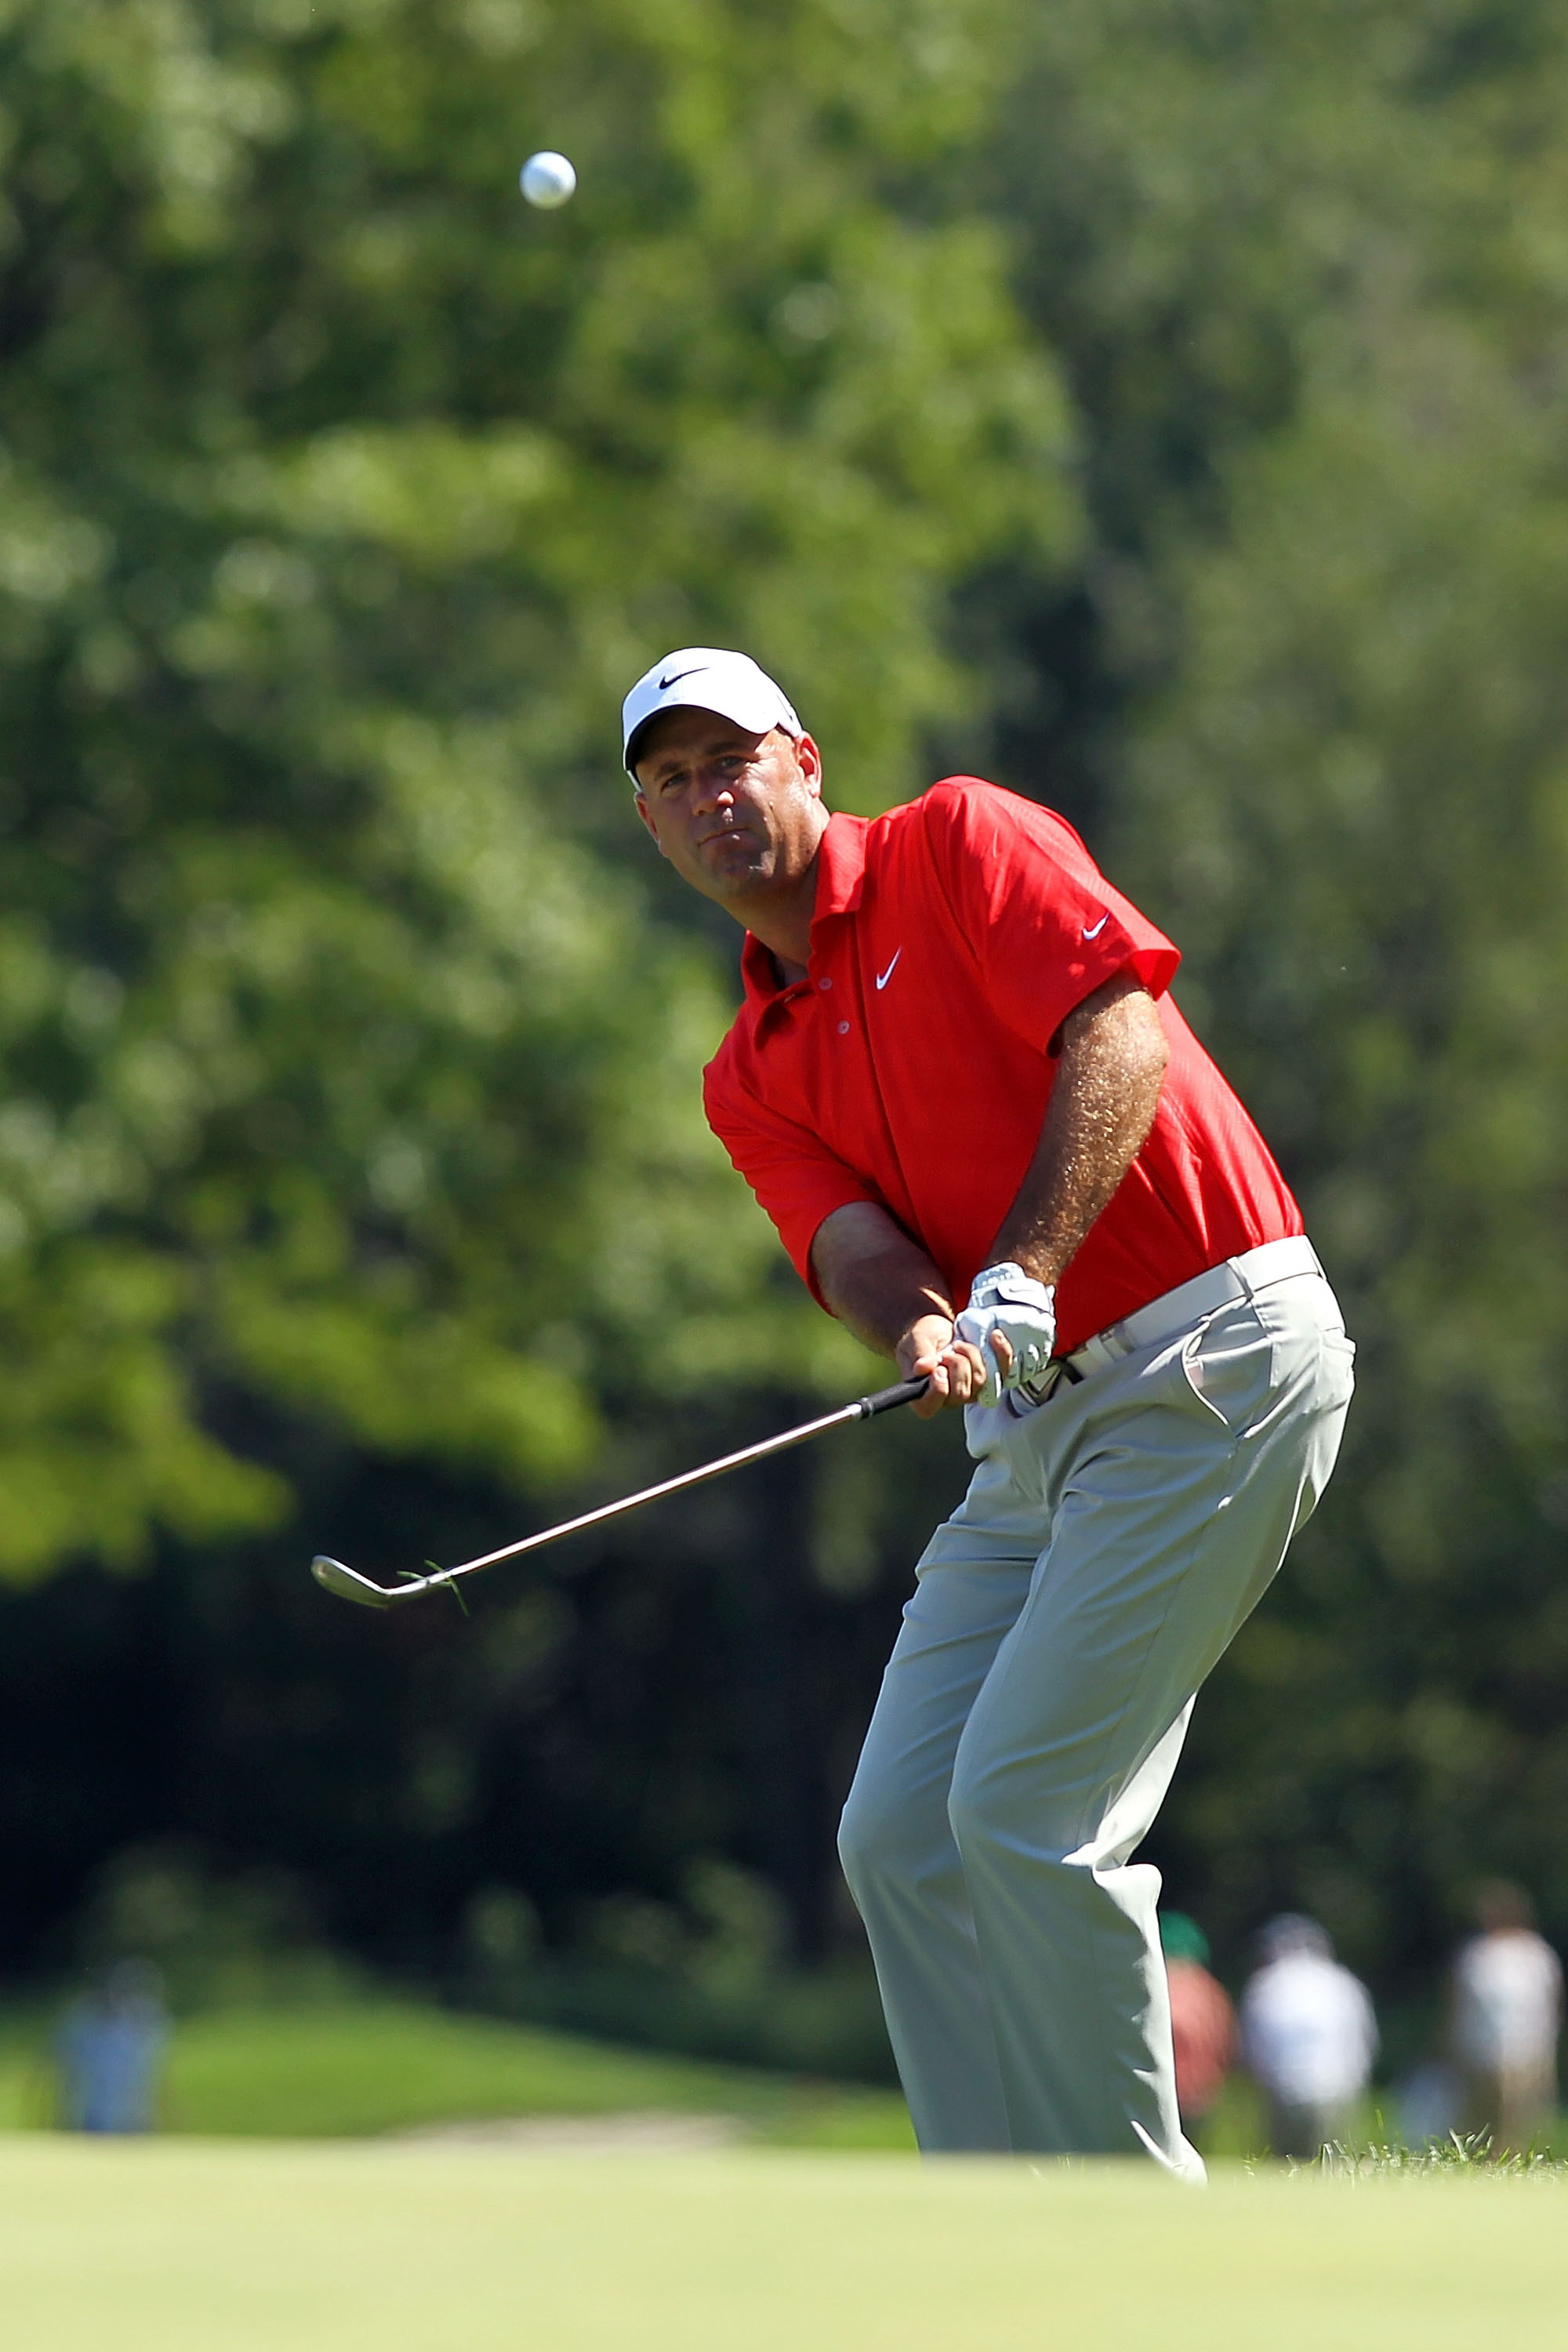 PARAMUS, NJ - AUGUST 28:  Stewart Cink pitches to the fifth green during the third round of The Barclays at the Ridgewood Country Club on August 28, 2010 in Paramus, New Jersey.  (Photo by Hunter Martin/Getty Images)